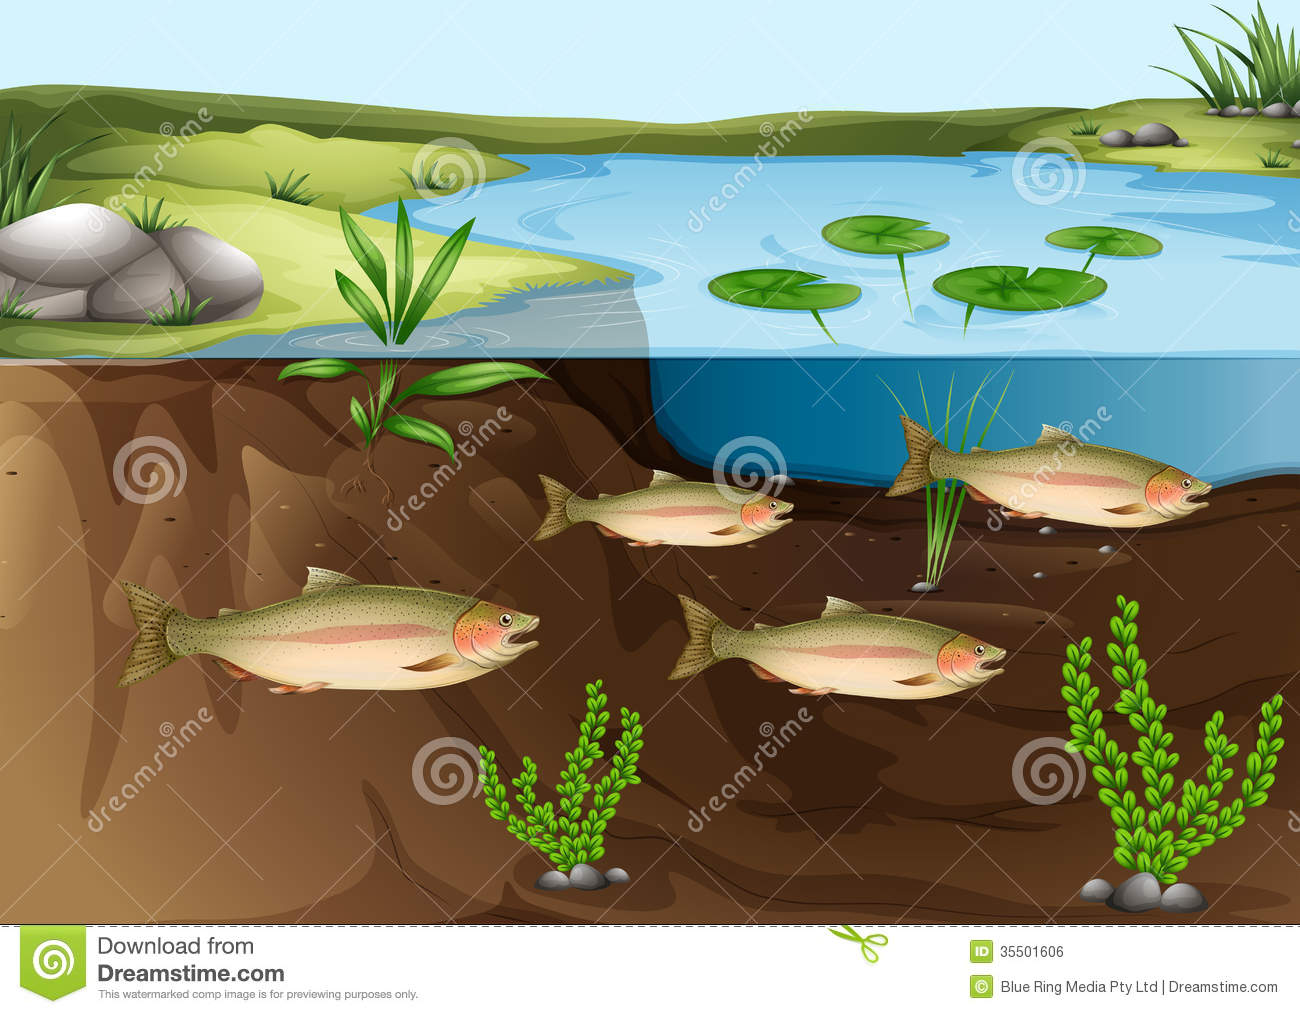 An ecosystem under the pond